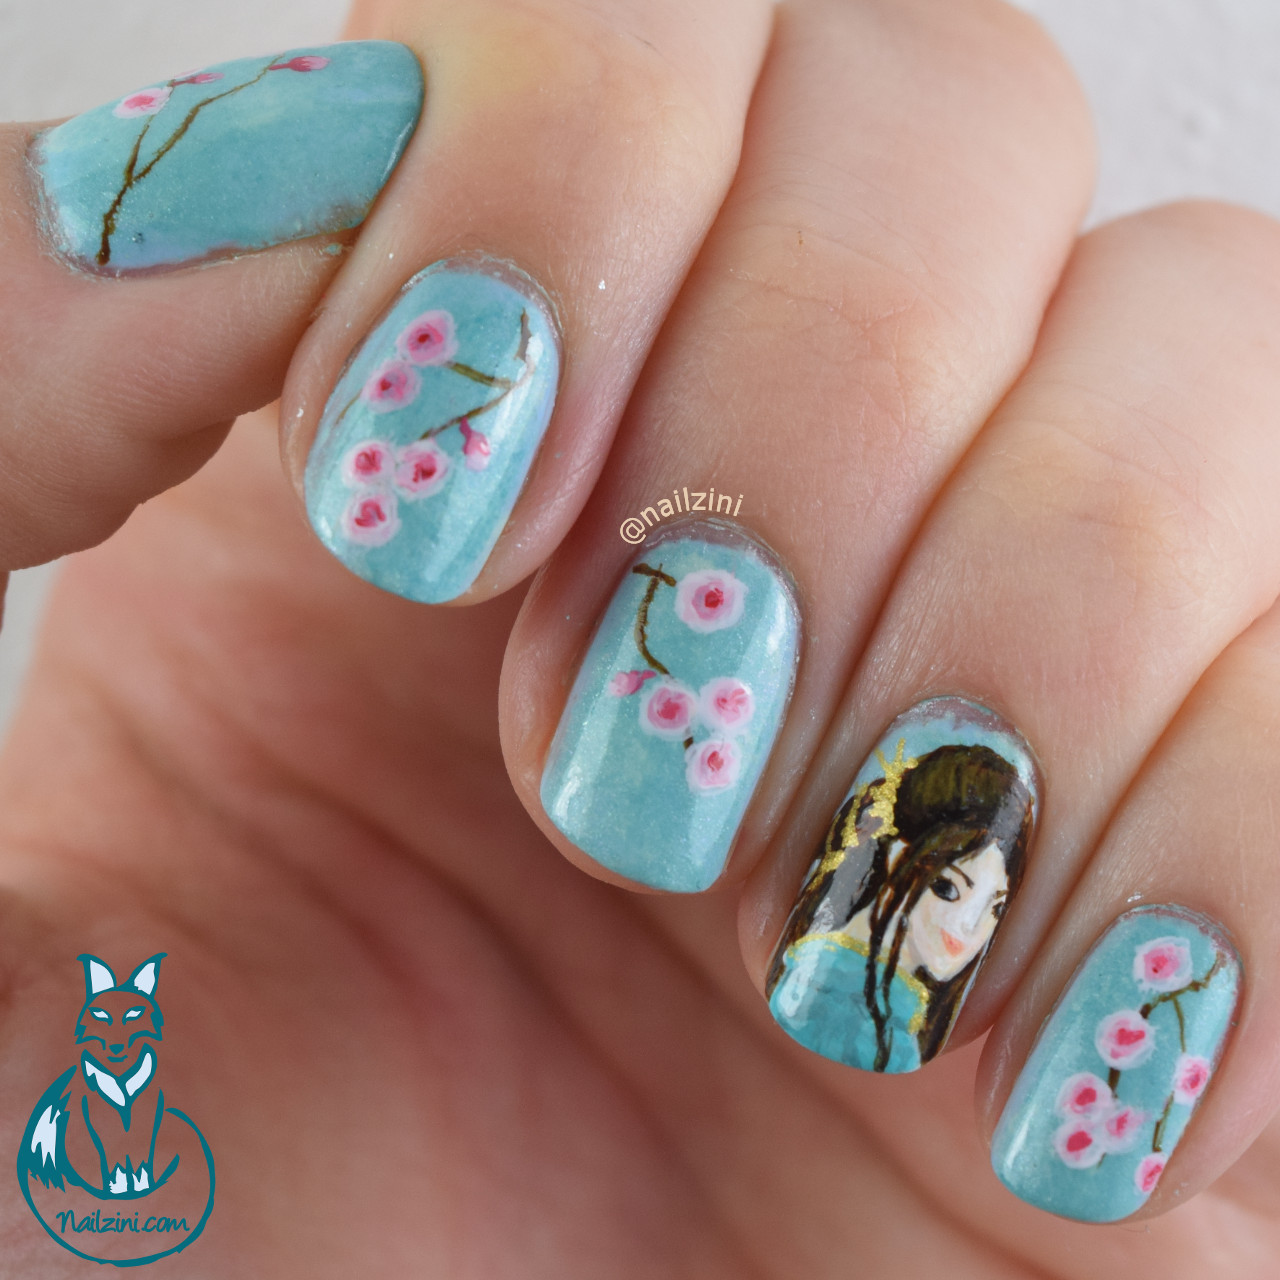 Japanese Cherry Blossom Nail Art | Nailzini: A Nail Art Blog